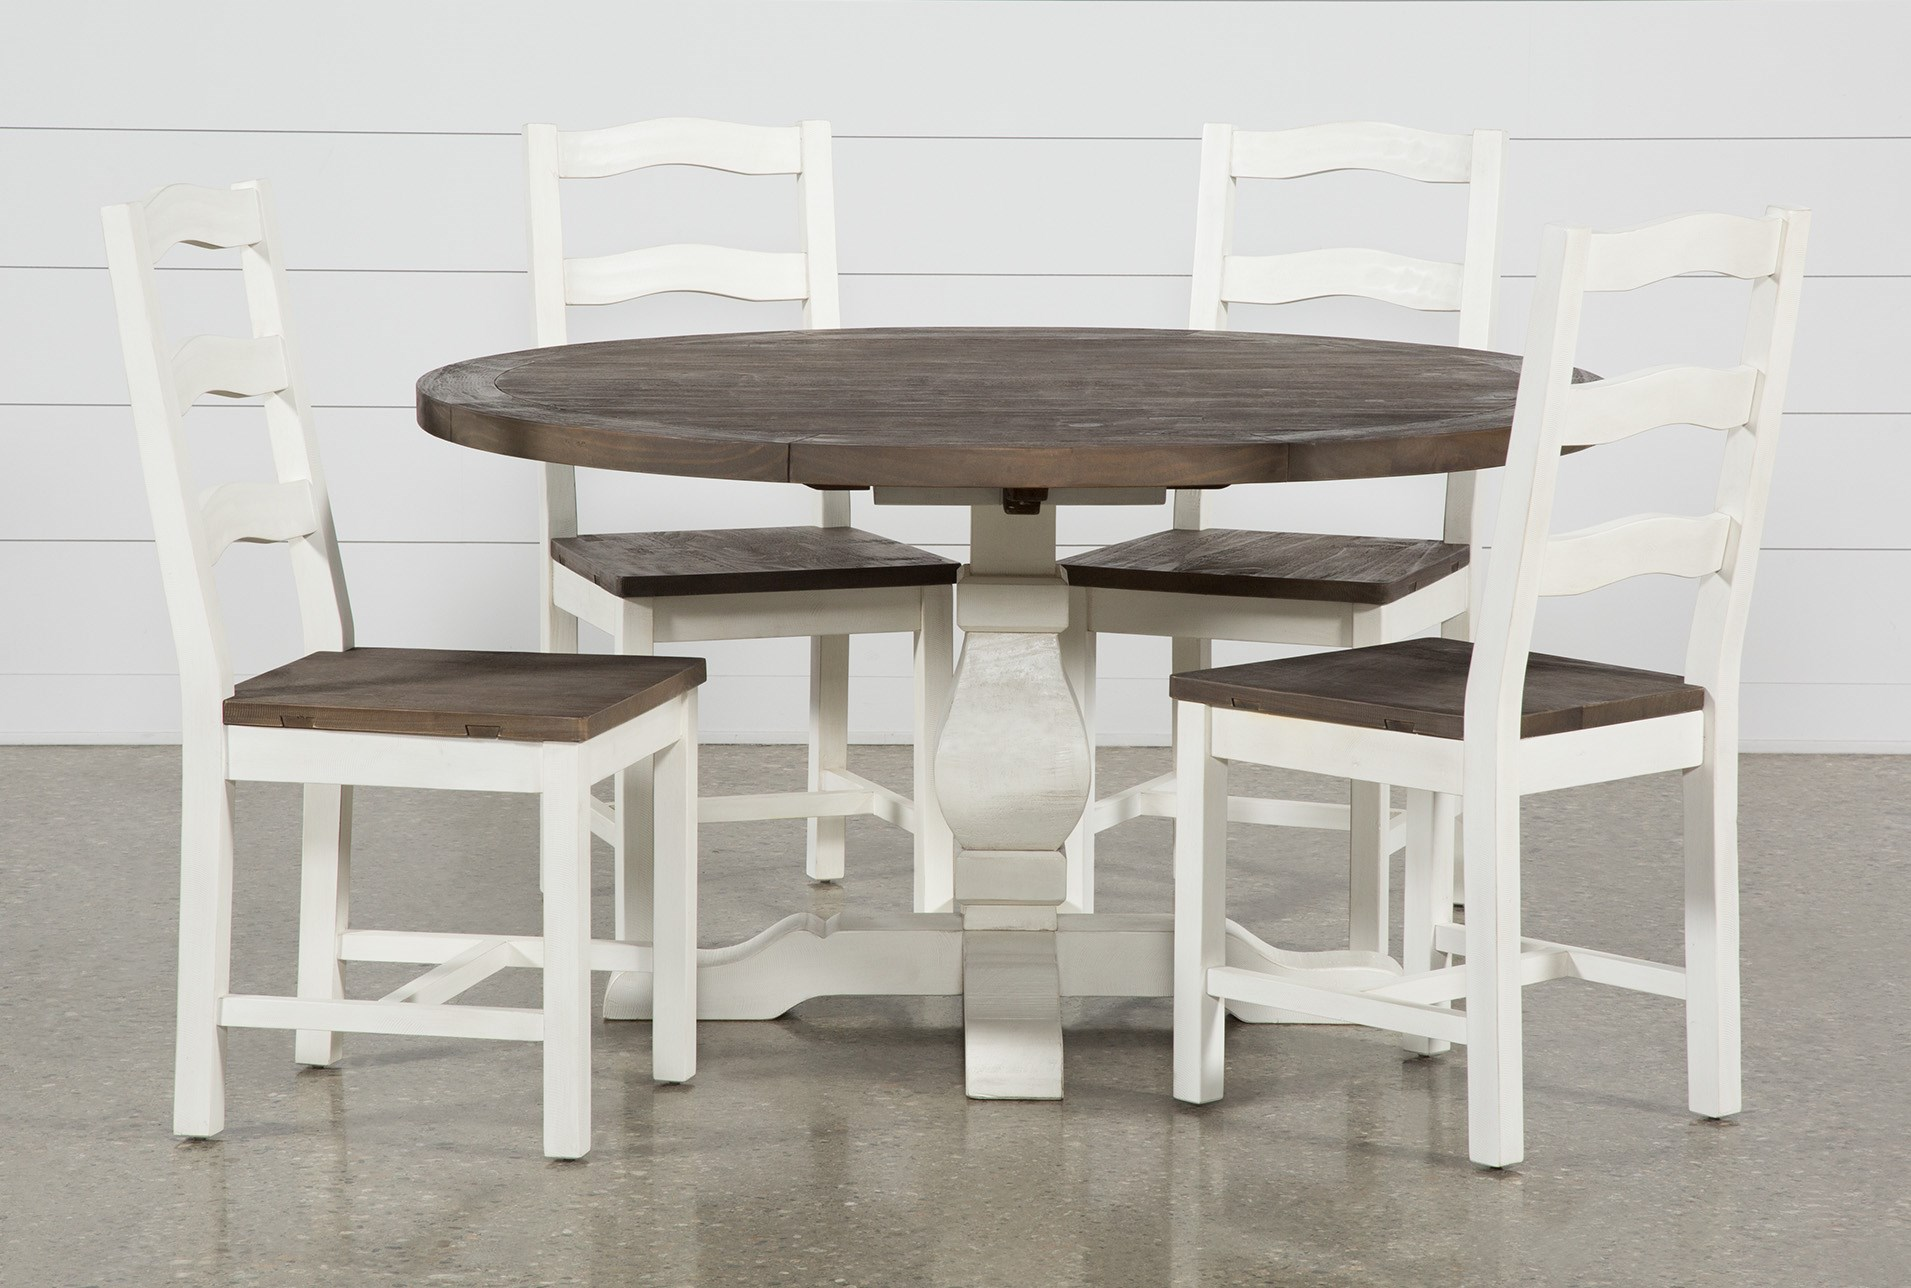 Brentwood Round 5 Piece Dining Set Qty 1 Has Been Successfully Added To Your Cart